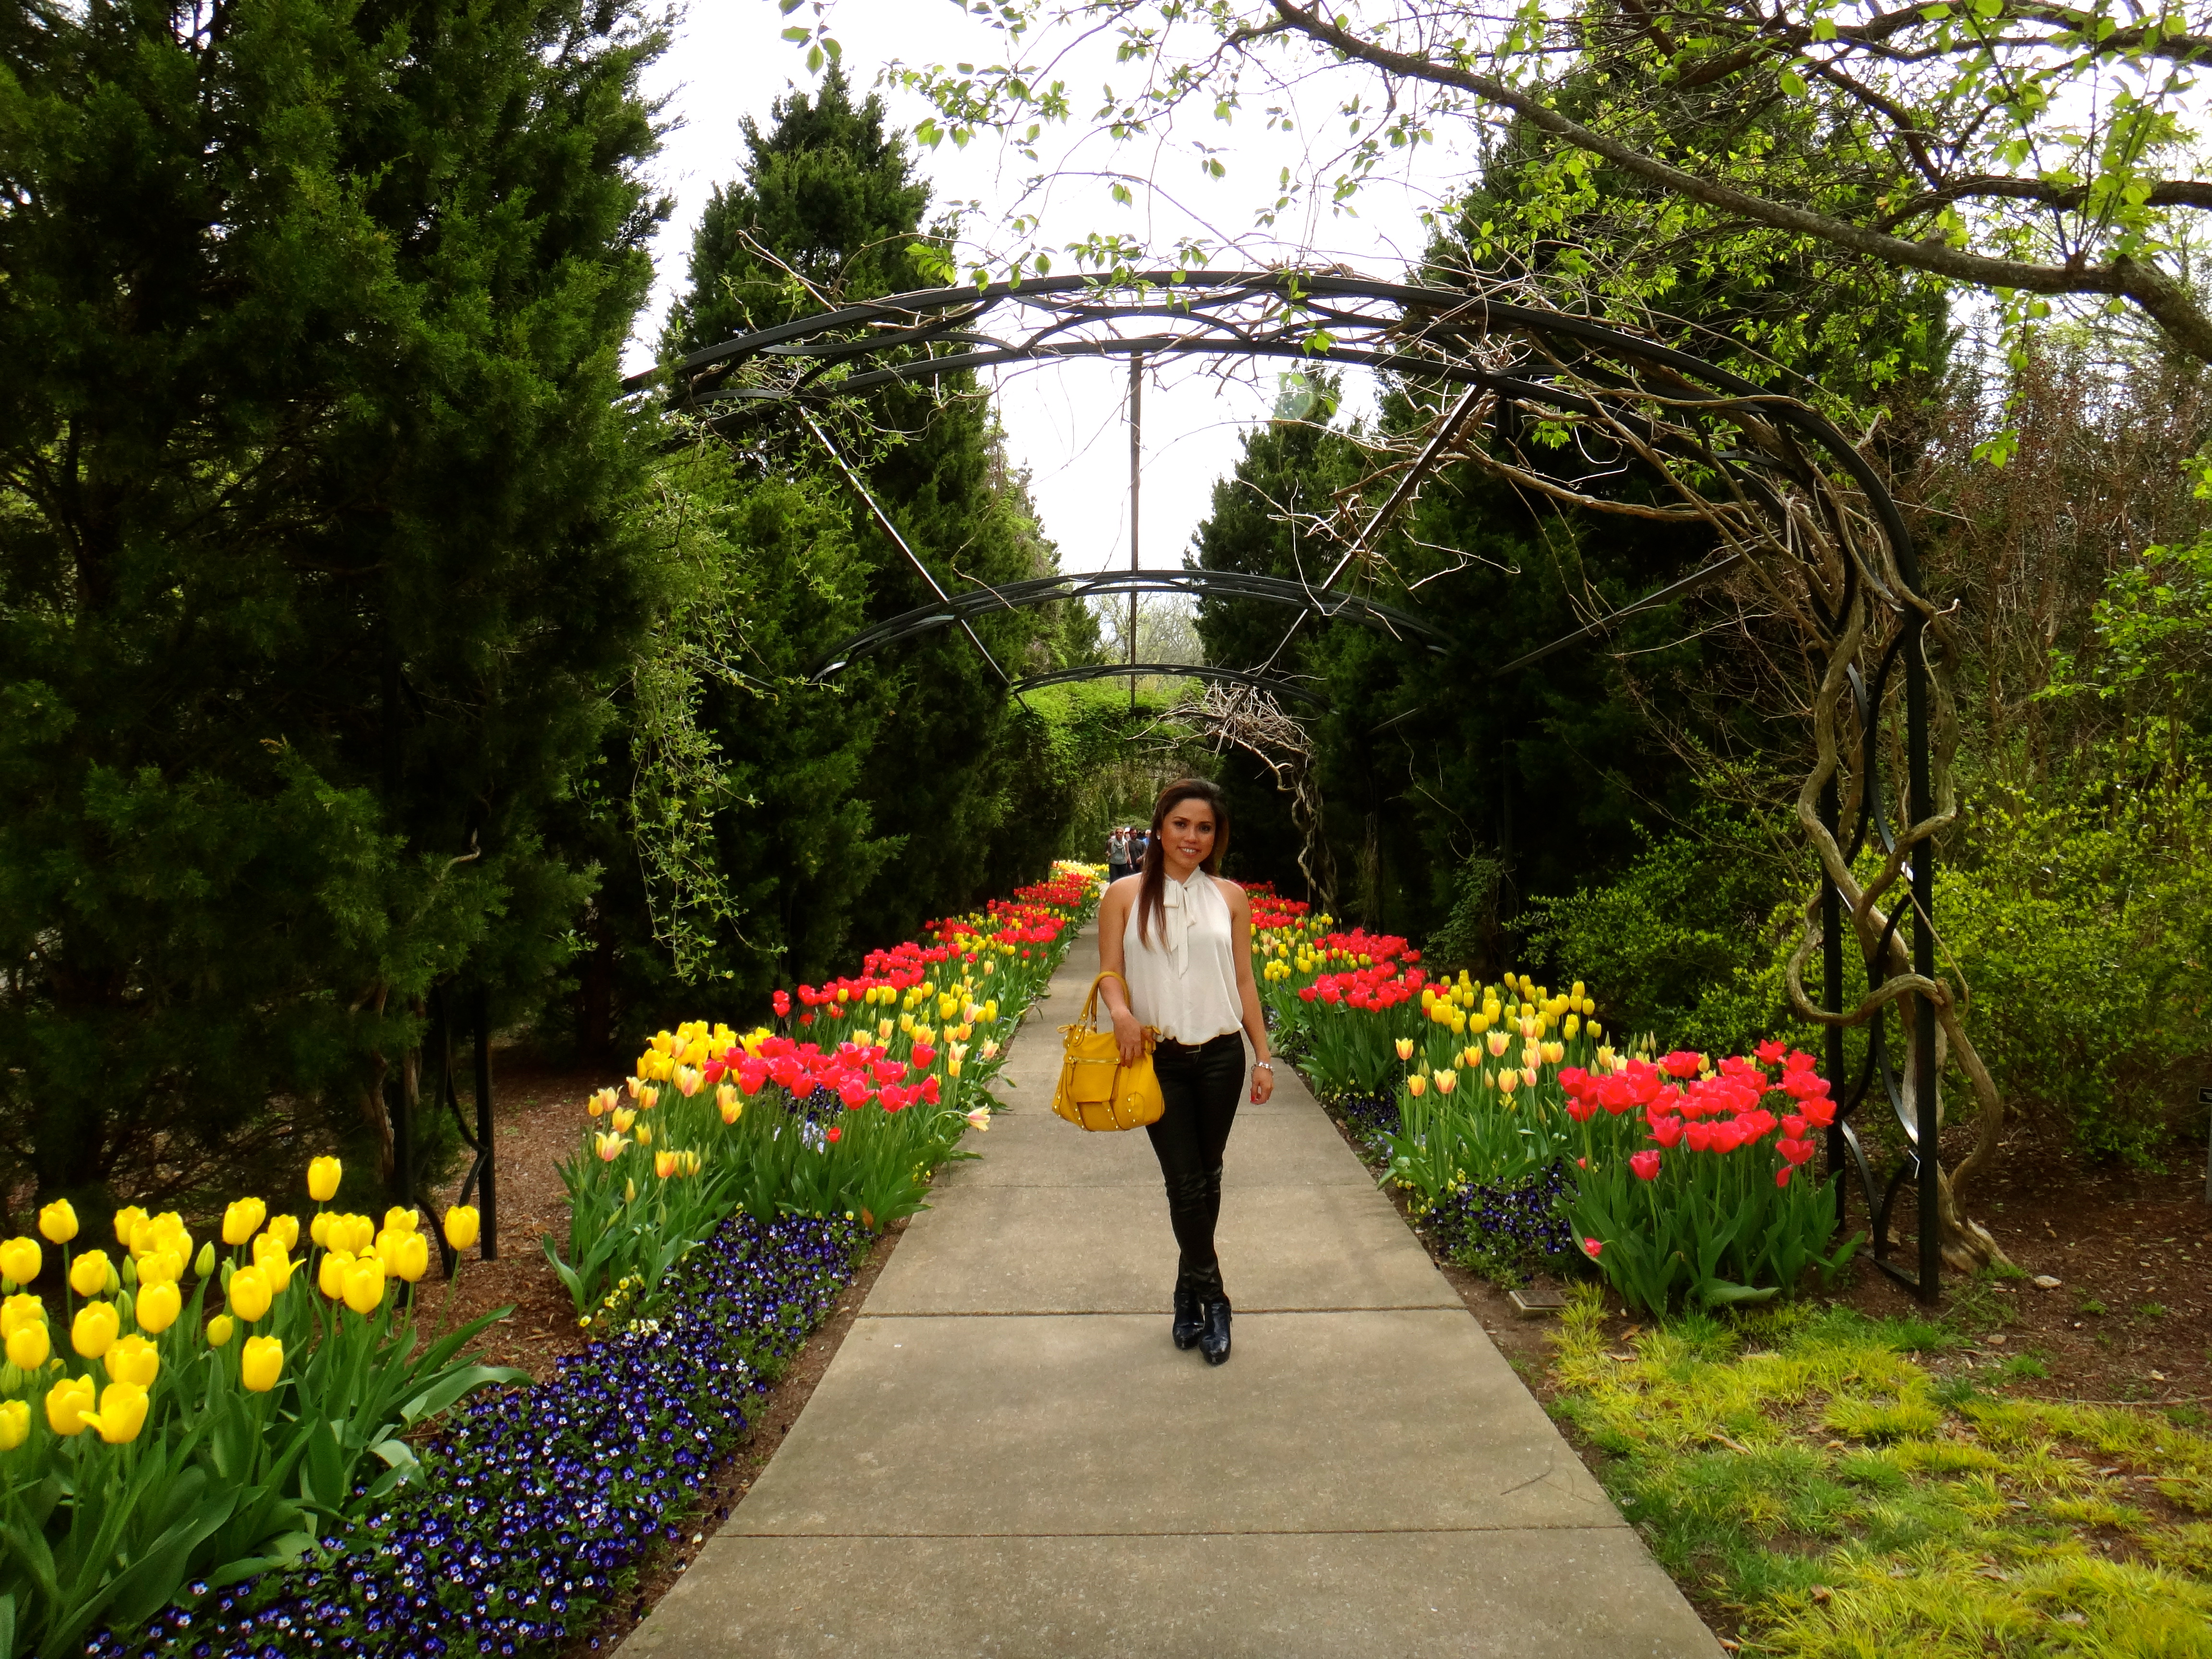 My Cousin Is A Big Fan Of Flowers And Wanted To Check Out Cheekwood  Botanical Garden